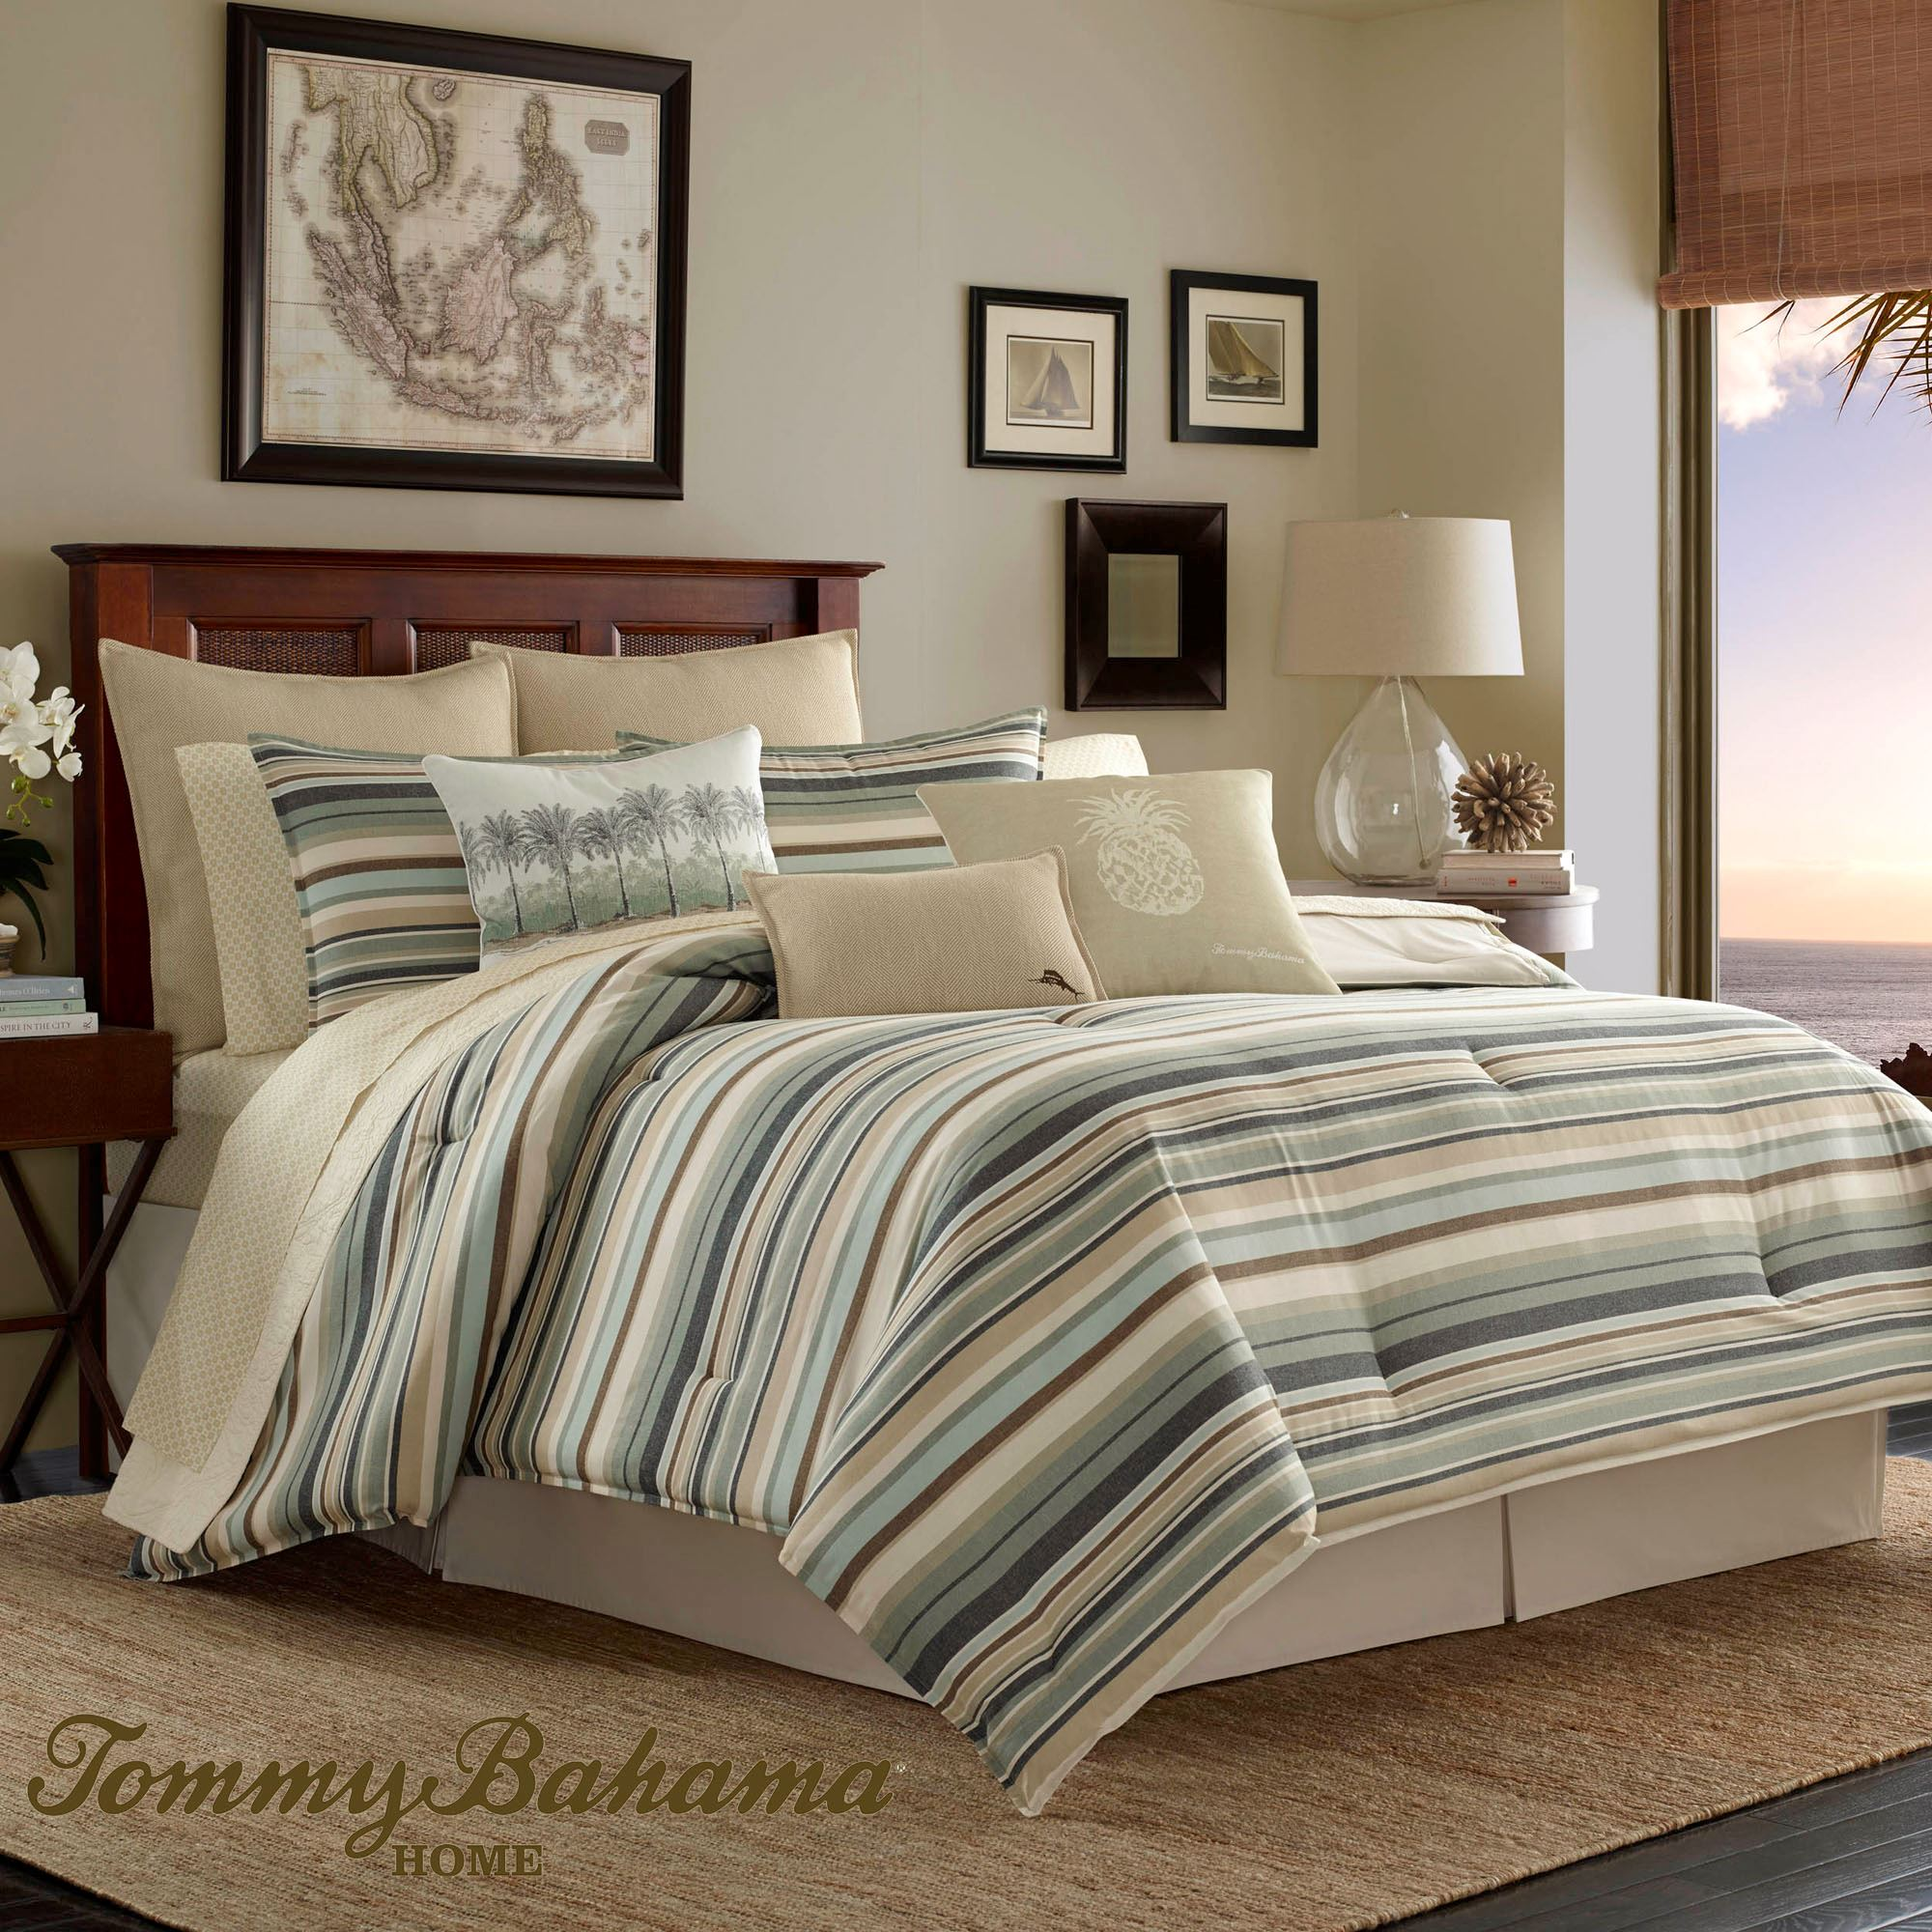 breezer set the sea re breezes by king comforter bedroom bahama seaglass this scala evoked pin your love we duvet create beautiful in paradise with la a tropical tommy